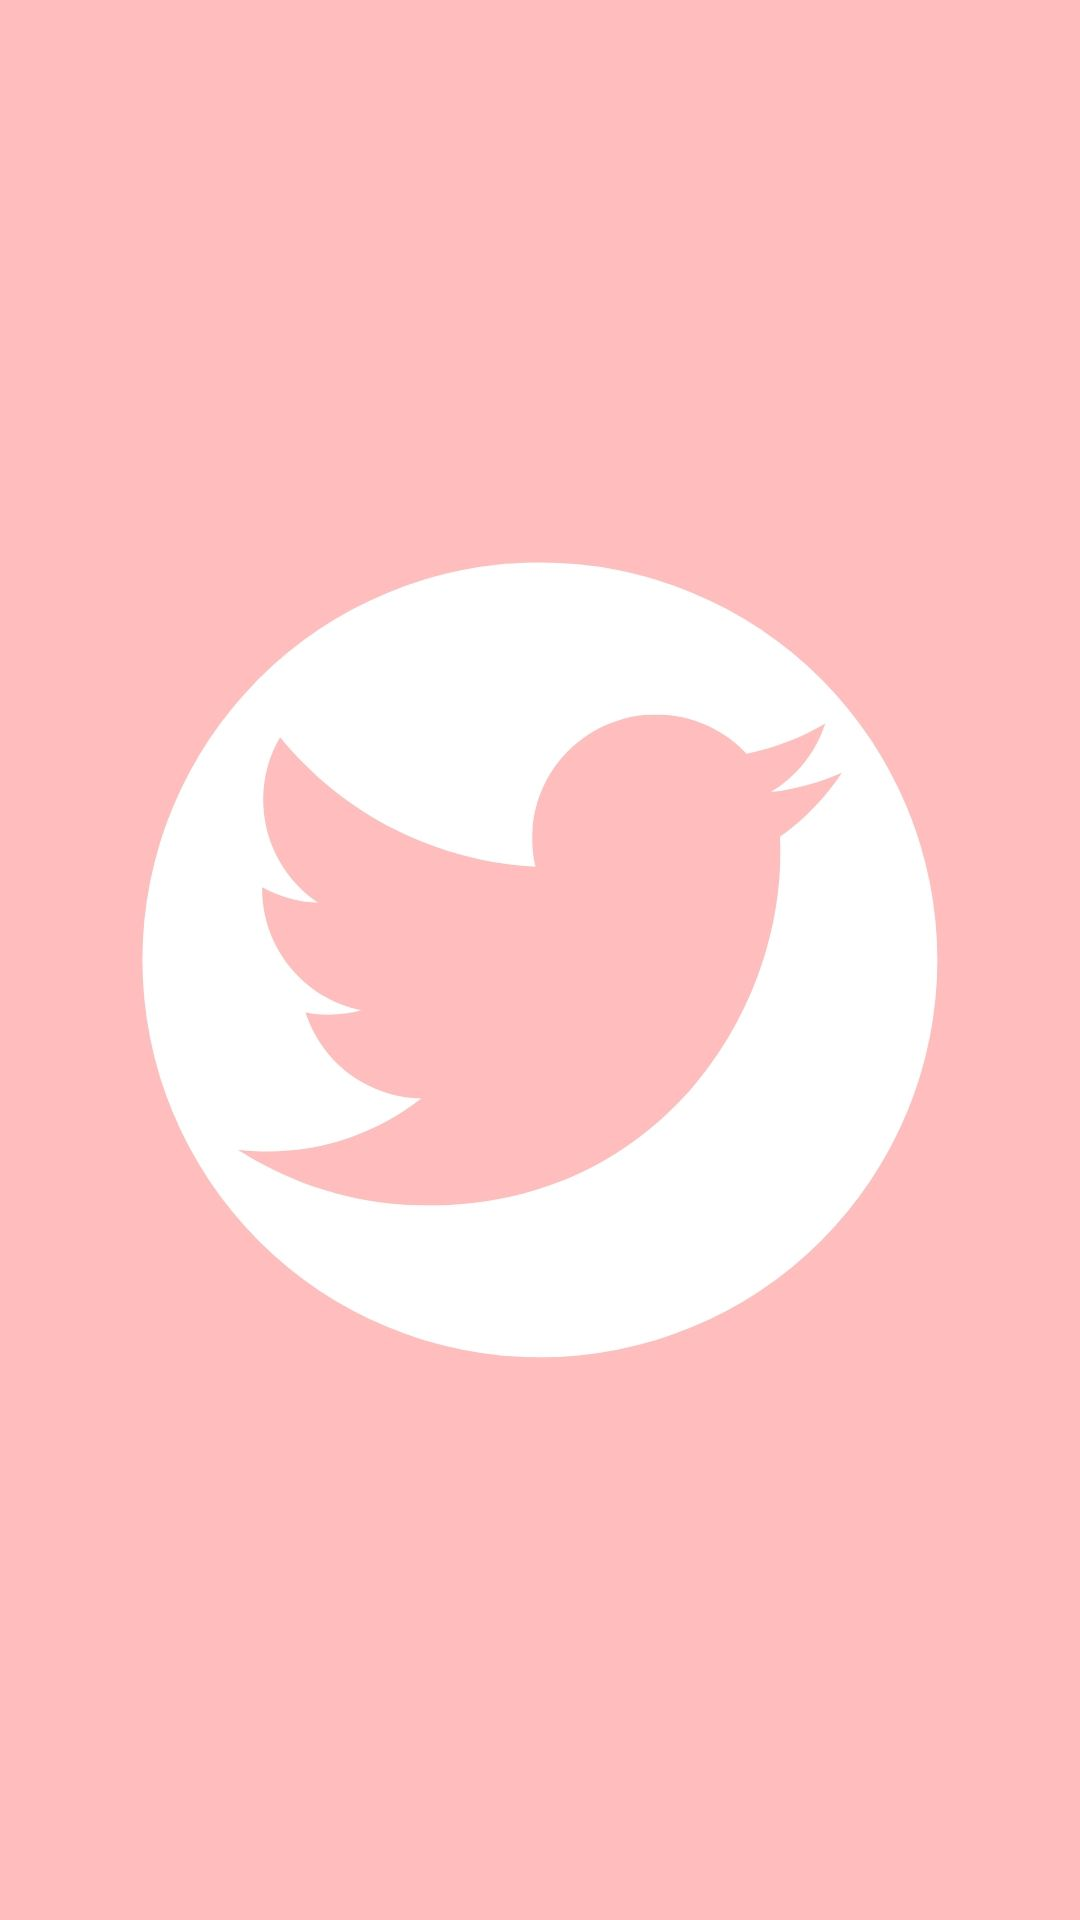 Twitter Iphone Wallpaper Tumblr Aesthetic Pink Twitter App Icon